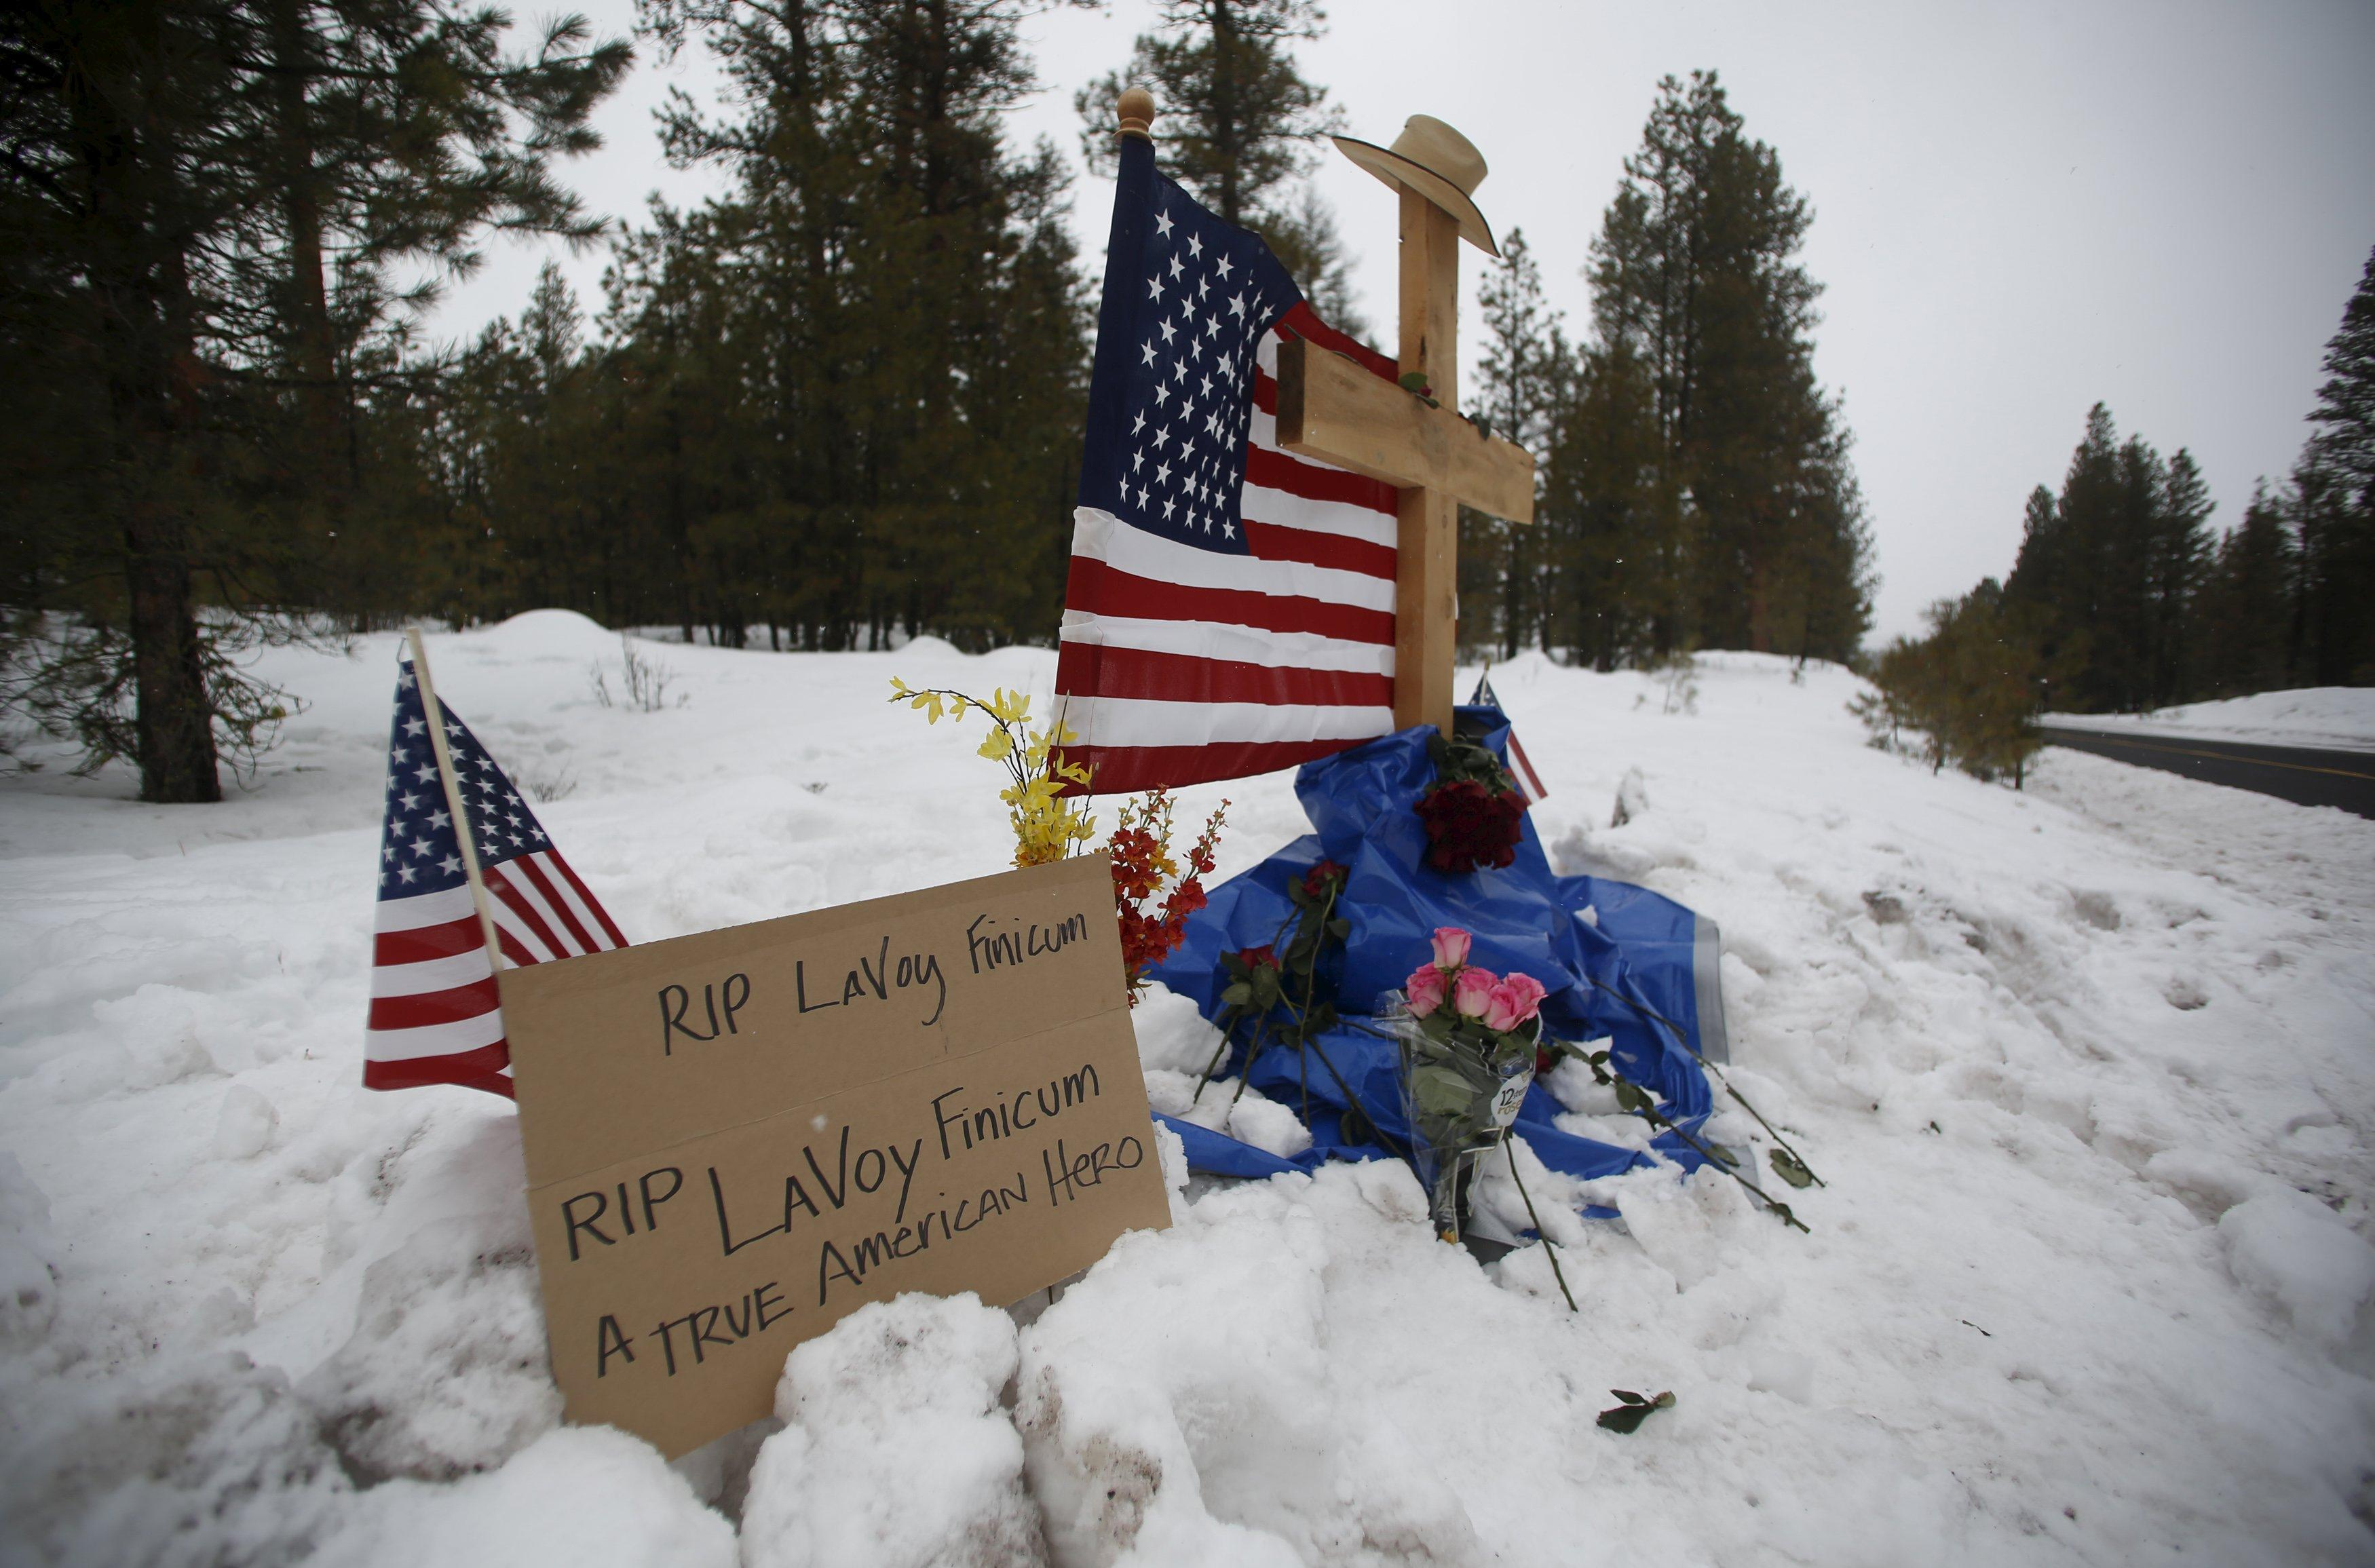 Armed militia standoff in Oregon